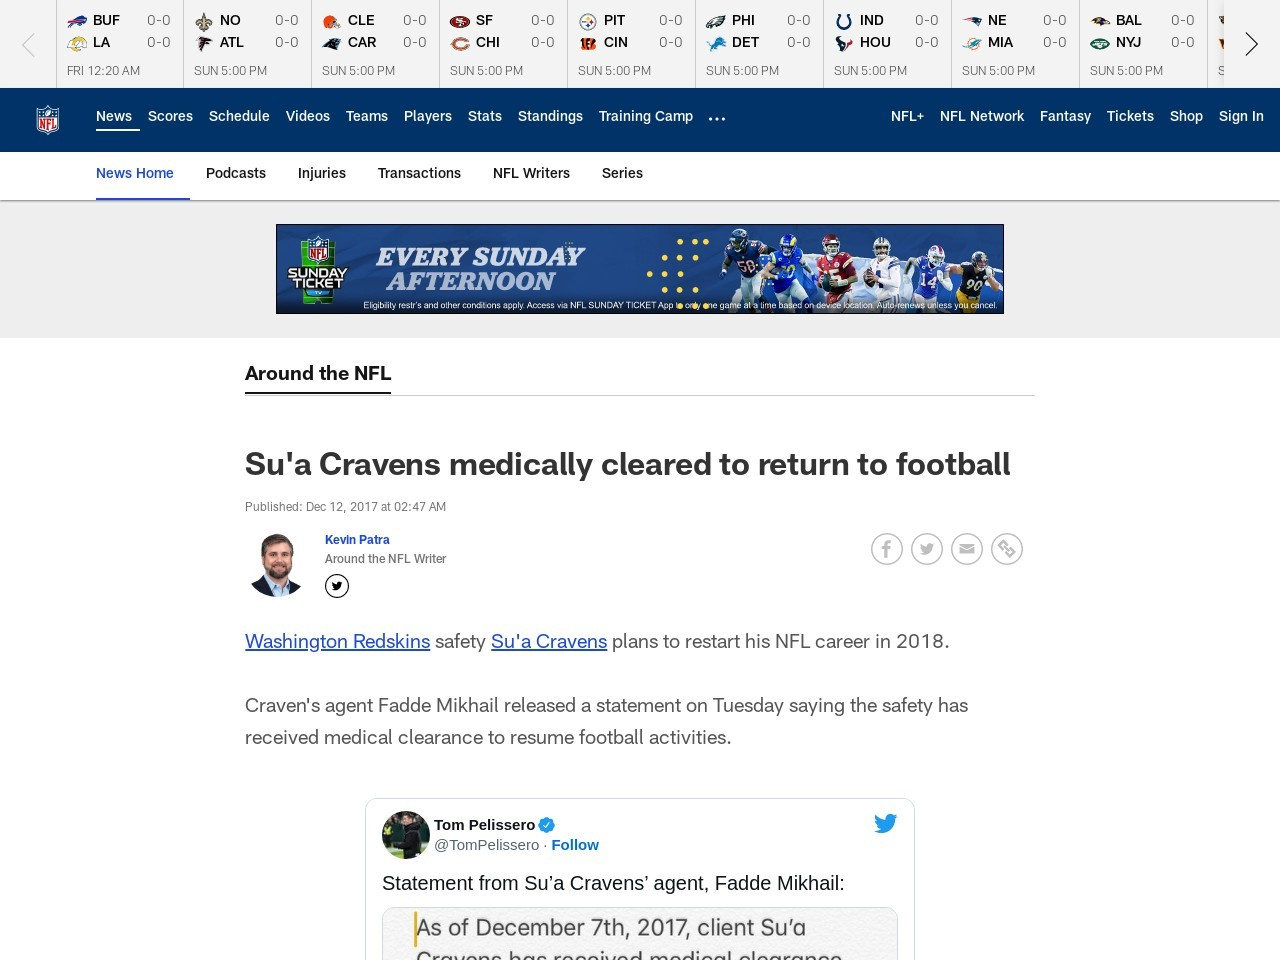 Su'a Cravens medically cleared to return to football